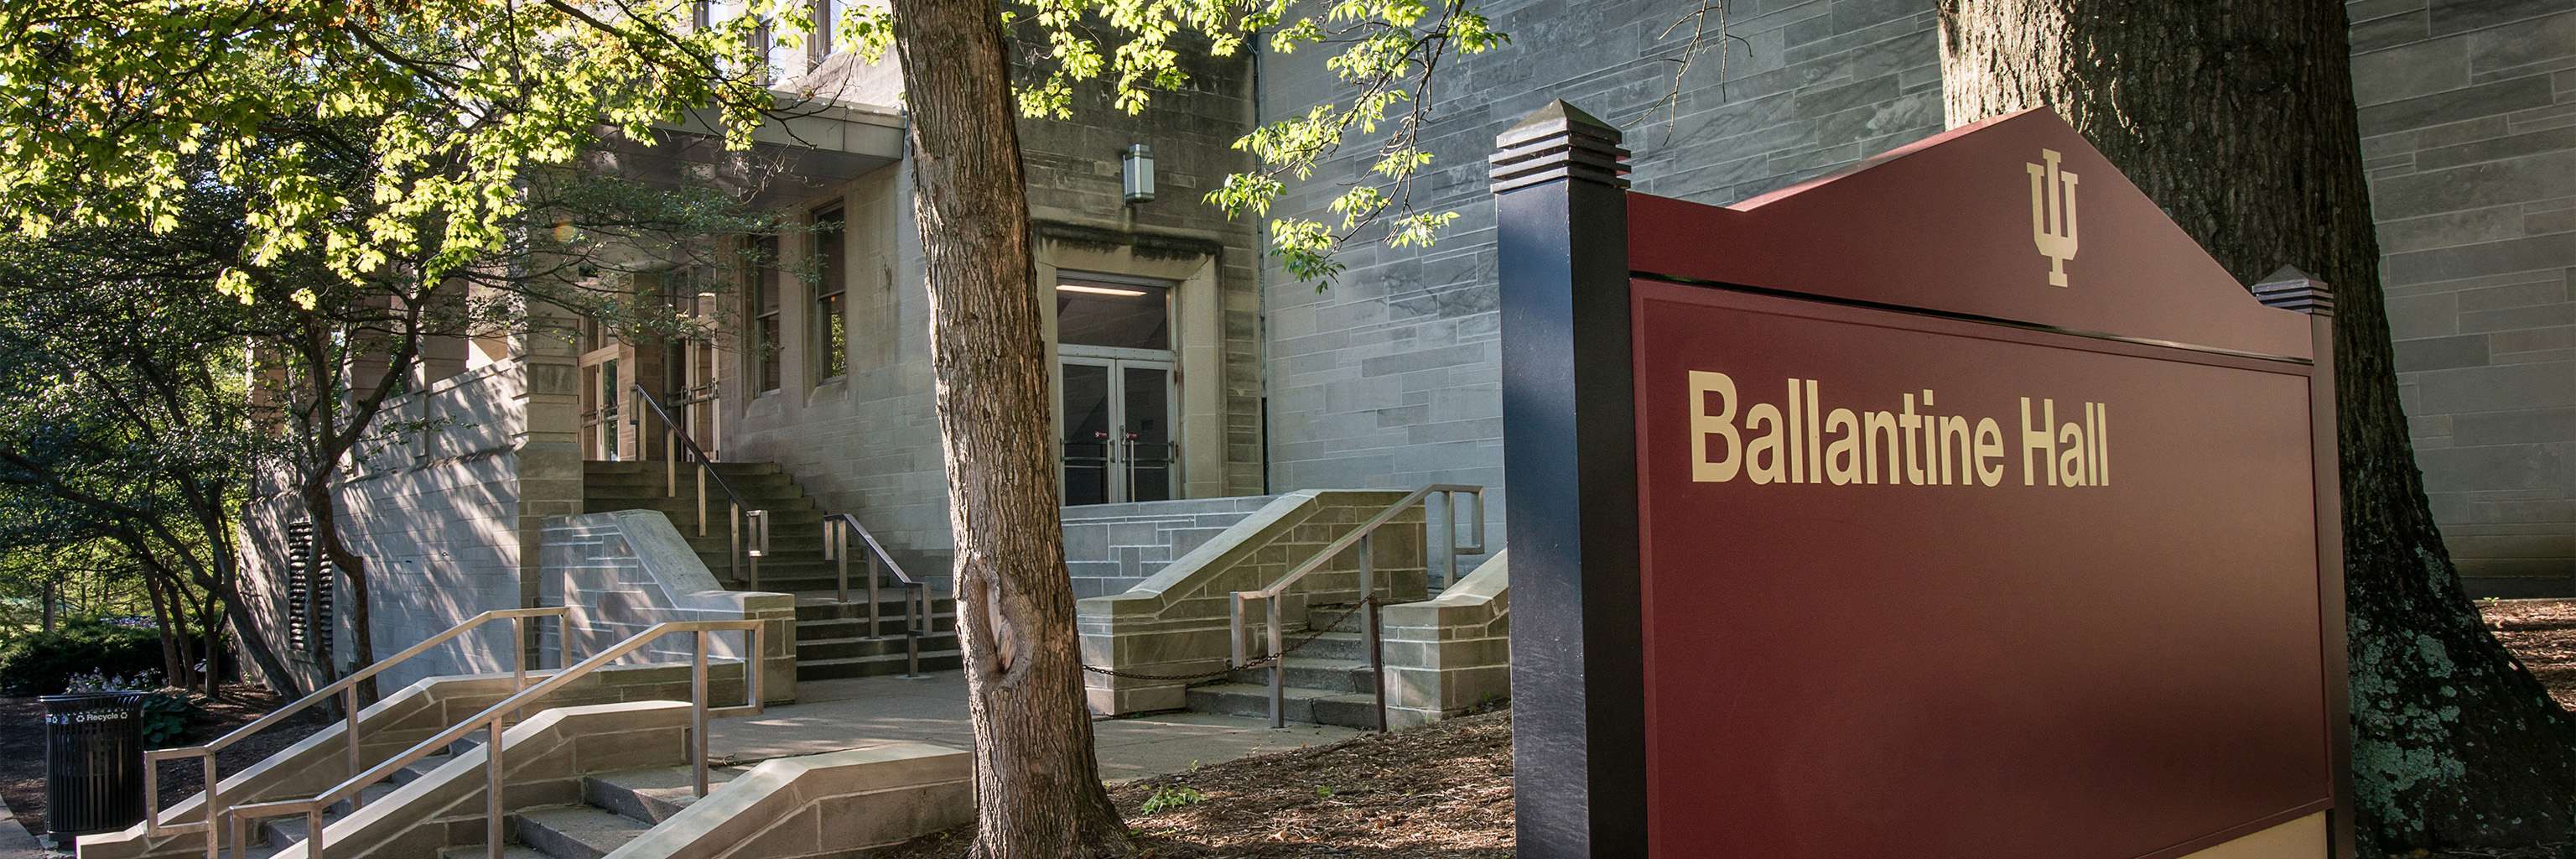 Close up of the building sign for Ballantine Hall.